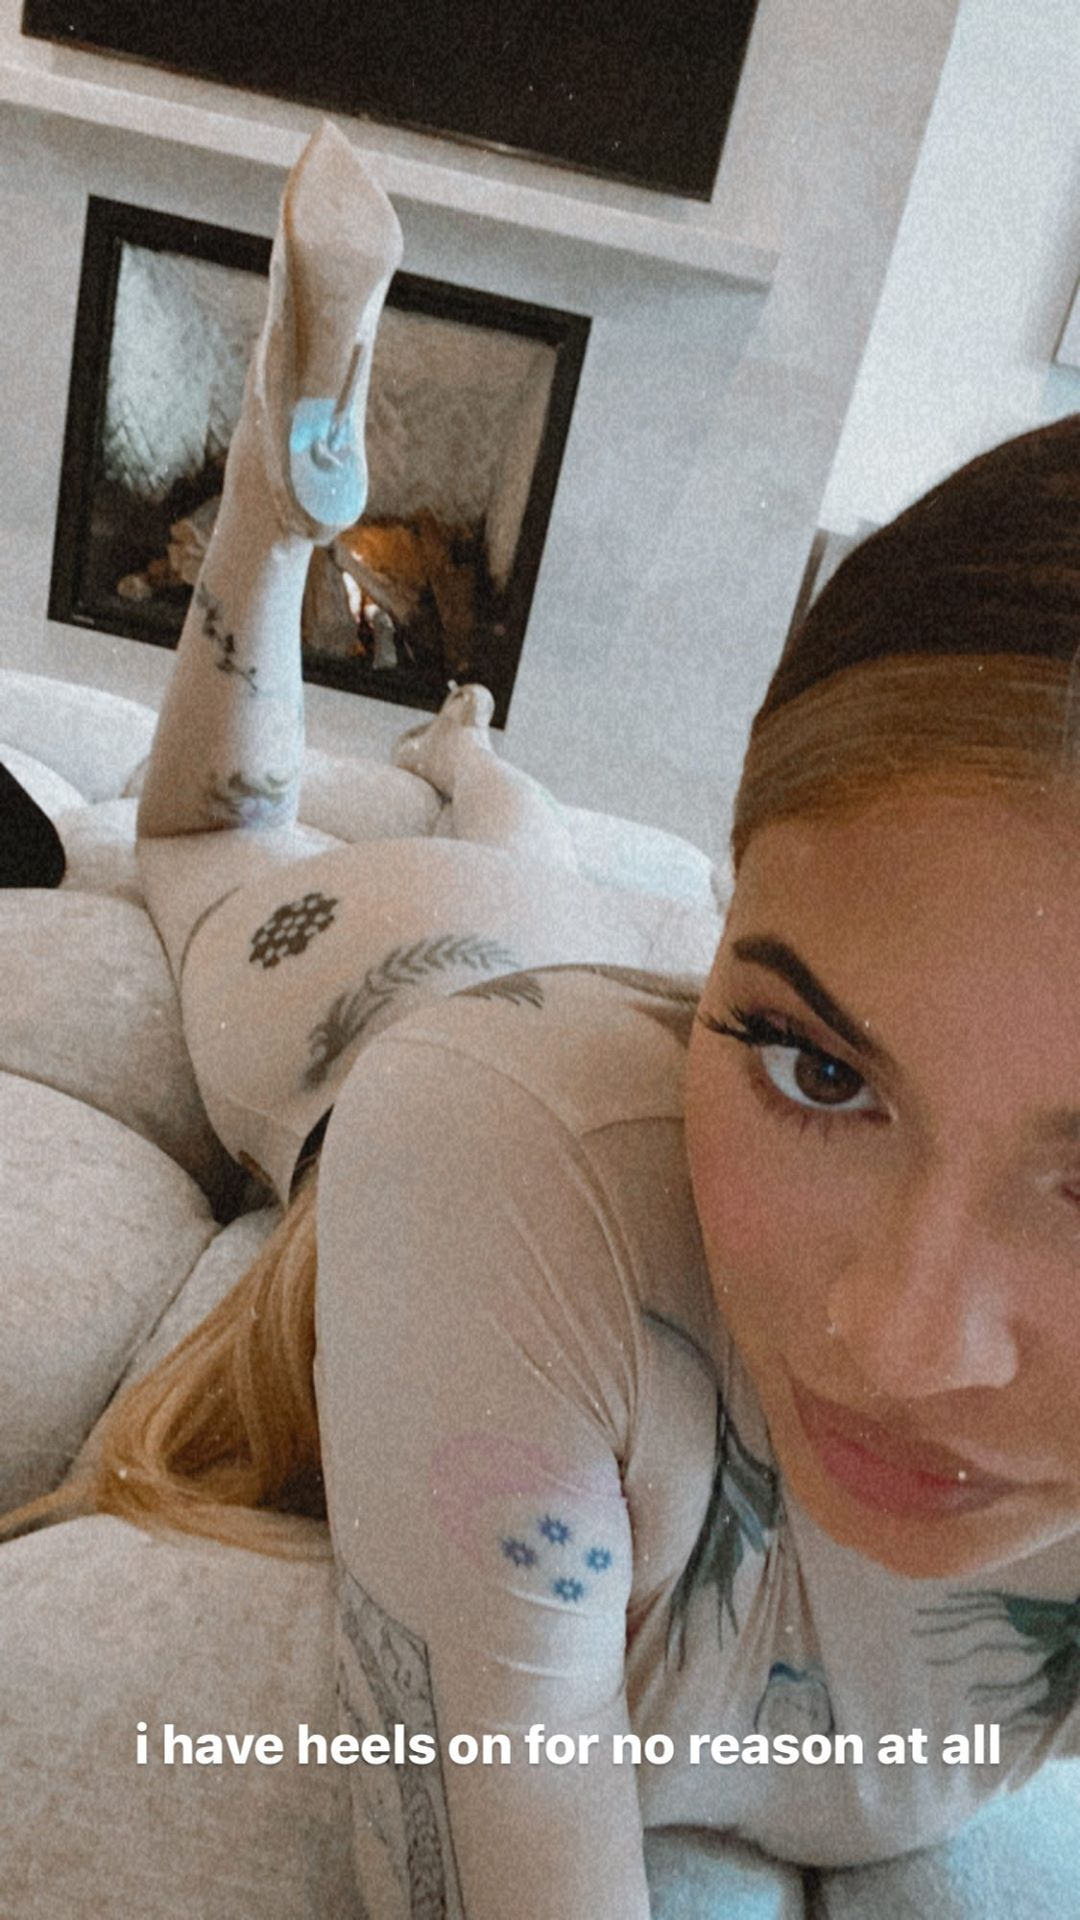 Kylie Jenner rocking completely see-through white Yeezy pumps with high heel